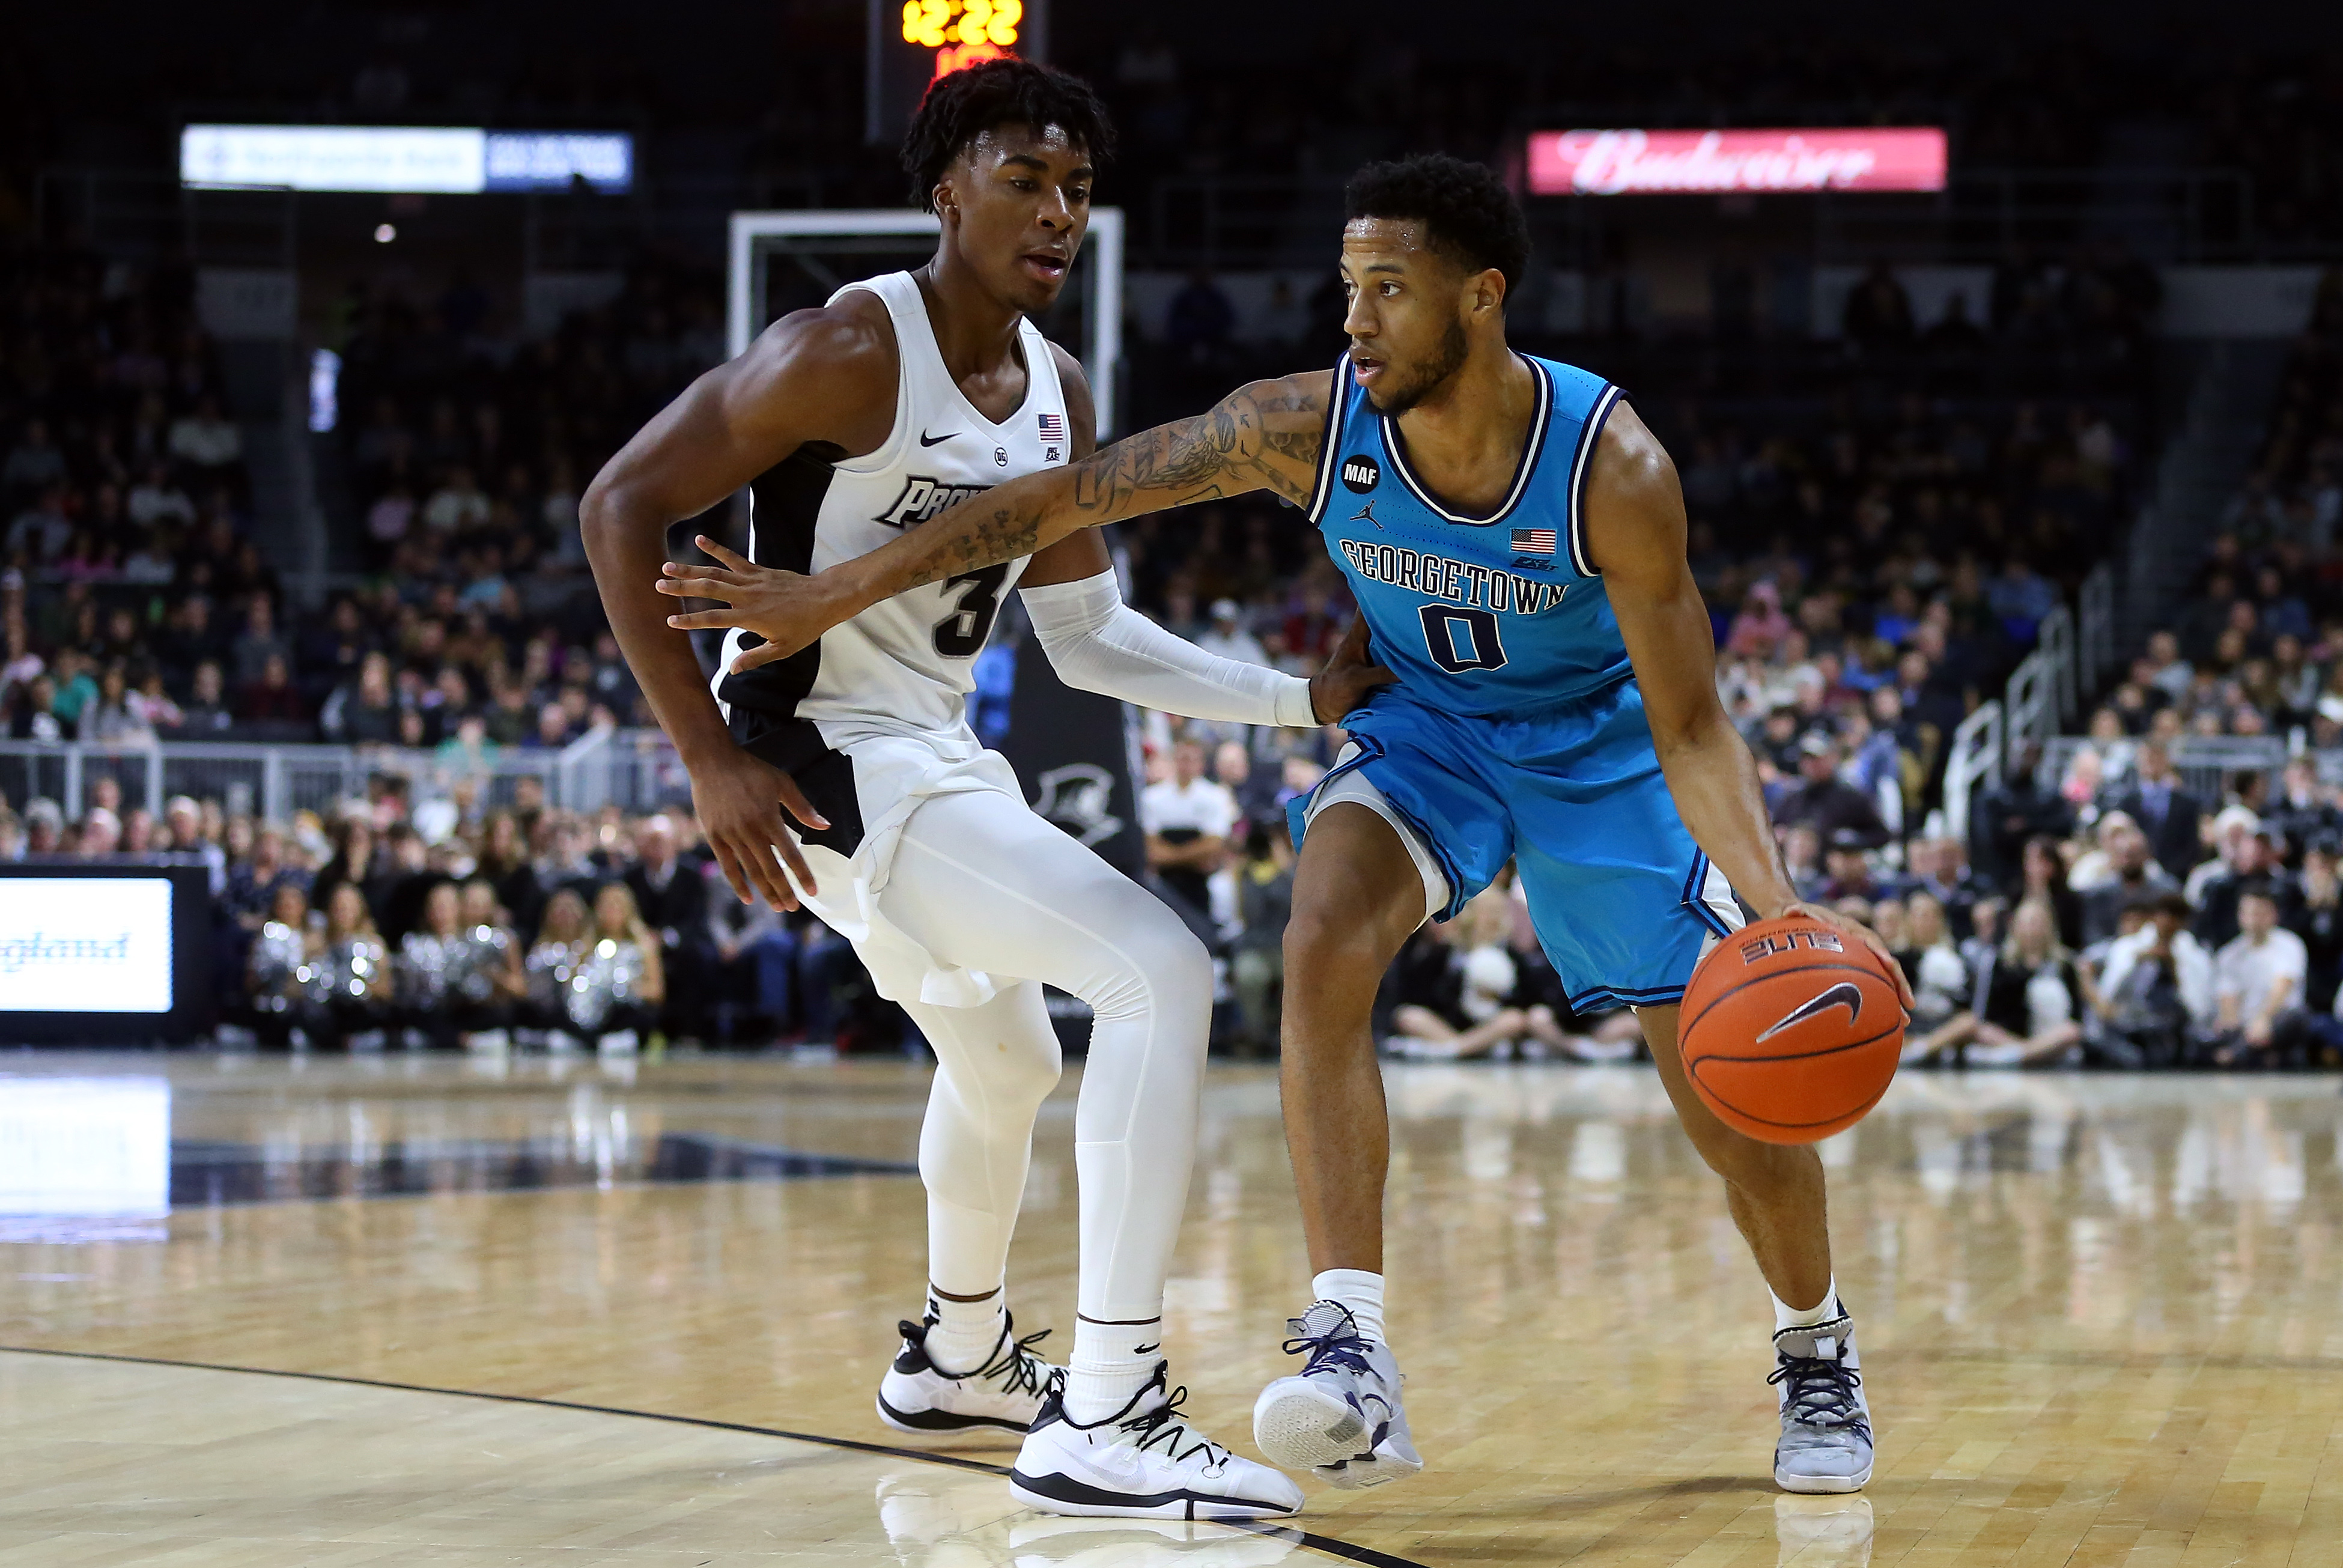 COLLEGE BASKETBALL: DEC 31 Georgetown at Providence